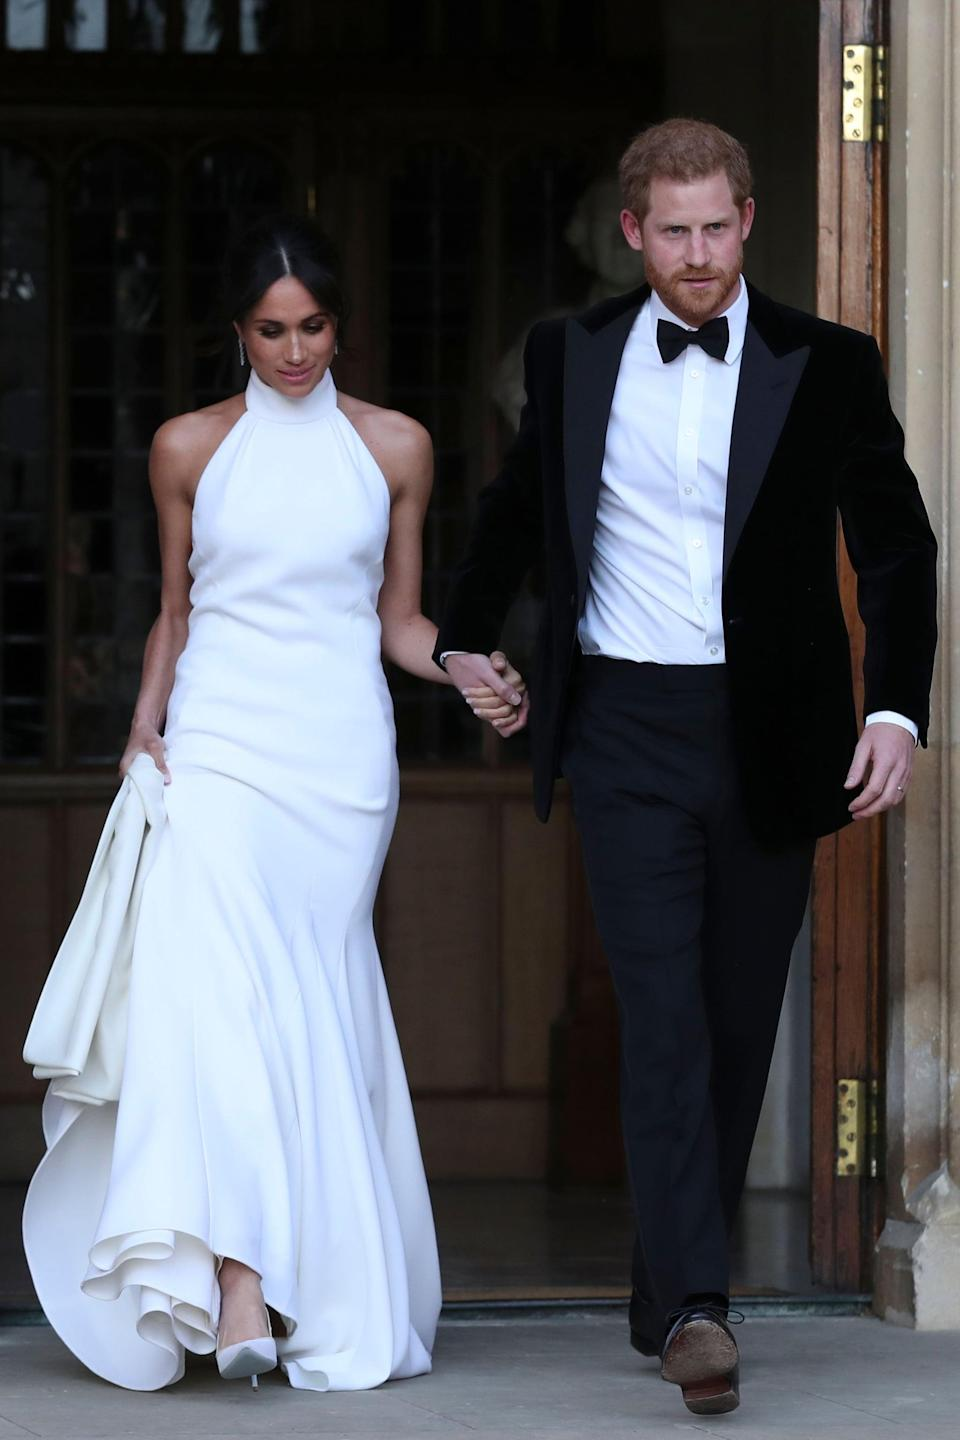 """<p>While we will never forget <a href=""""https://www.popsugar.com/fashion/Meghan-Markle-Wedding-Dress-44842704"""" class=""""link rapid-noclick-resp"""" rel=""""nofollow noopener"""" target=""""_blank"""" data-ylk=""""slk:Meghan's Givenchy three-quarter-sleeved satin wedding dress"""">Meghan's Givenchy three-quarter-sleeved satin wedding dress</a>, created by Clare Waight Keller, it was <a href=""""https://www.popsugar.com/fashion/Meghan-Markle-Second-Wedding-Dress-44757685"""" class=""""link rapid-noclick-resp"""" rel=""""nofollow noopener"""" target=""""_blank"""" data-ylk=""""slk:her Stella McCartney reception gown"""">her Stella McCartney reception gown</a> that really stole the show and made headlines. The Duchess of Sussex styled her bespoke halter-neck number with Aquazzura heels and <a href=""""https://www.popsugar.com/fashion/Meghan-Markle-Blue-Ring-Her-Wedding-2018-44862617"""" class=""""link rapid-noclick-resp"""" rel=""""nofollow noopener"""" target=""""_blank"""" data-ylk=""""slk:Princess Diana's Asprey gemstone ring"""">Princess Diana's Asprey gemstone ring</a> when she joined Prince Harry for their party at Frogmore House on the evening of May 19. Meghan's decision to show off some skin and bare her shoulders will forever go down in history as a significant moment in royal dressing.</p>"""